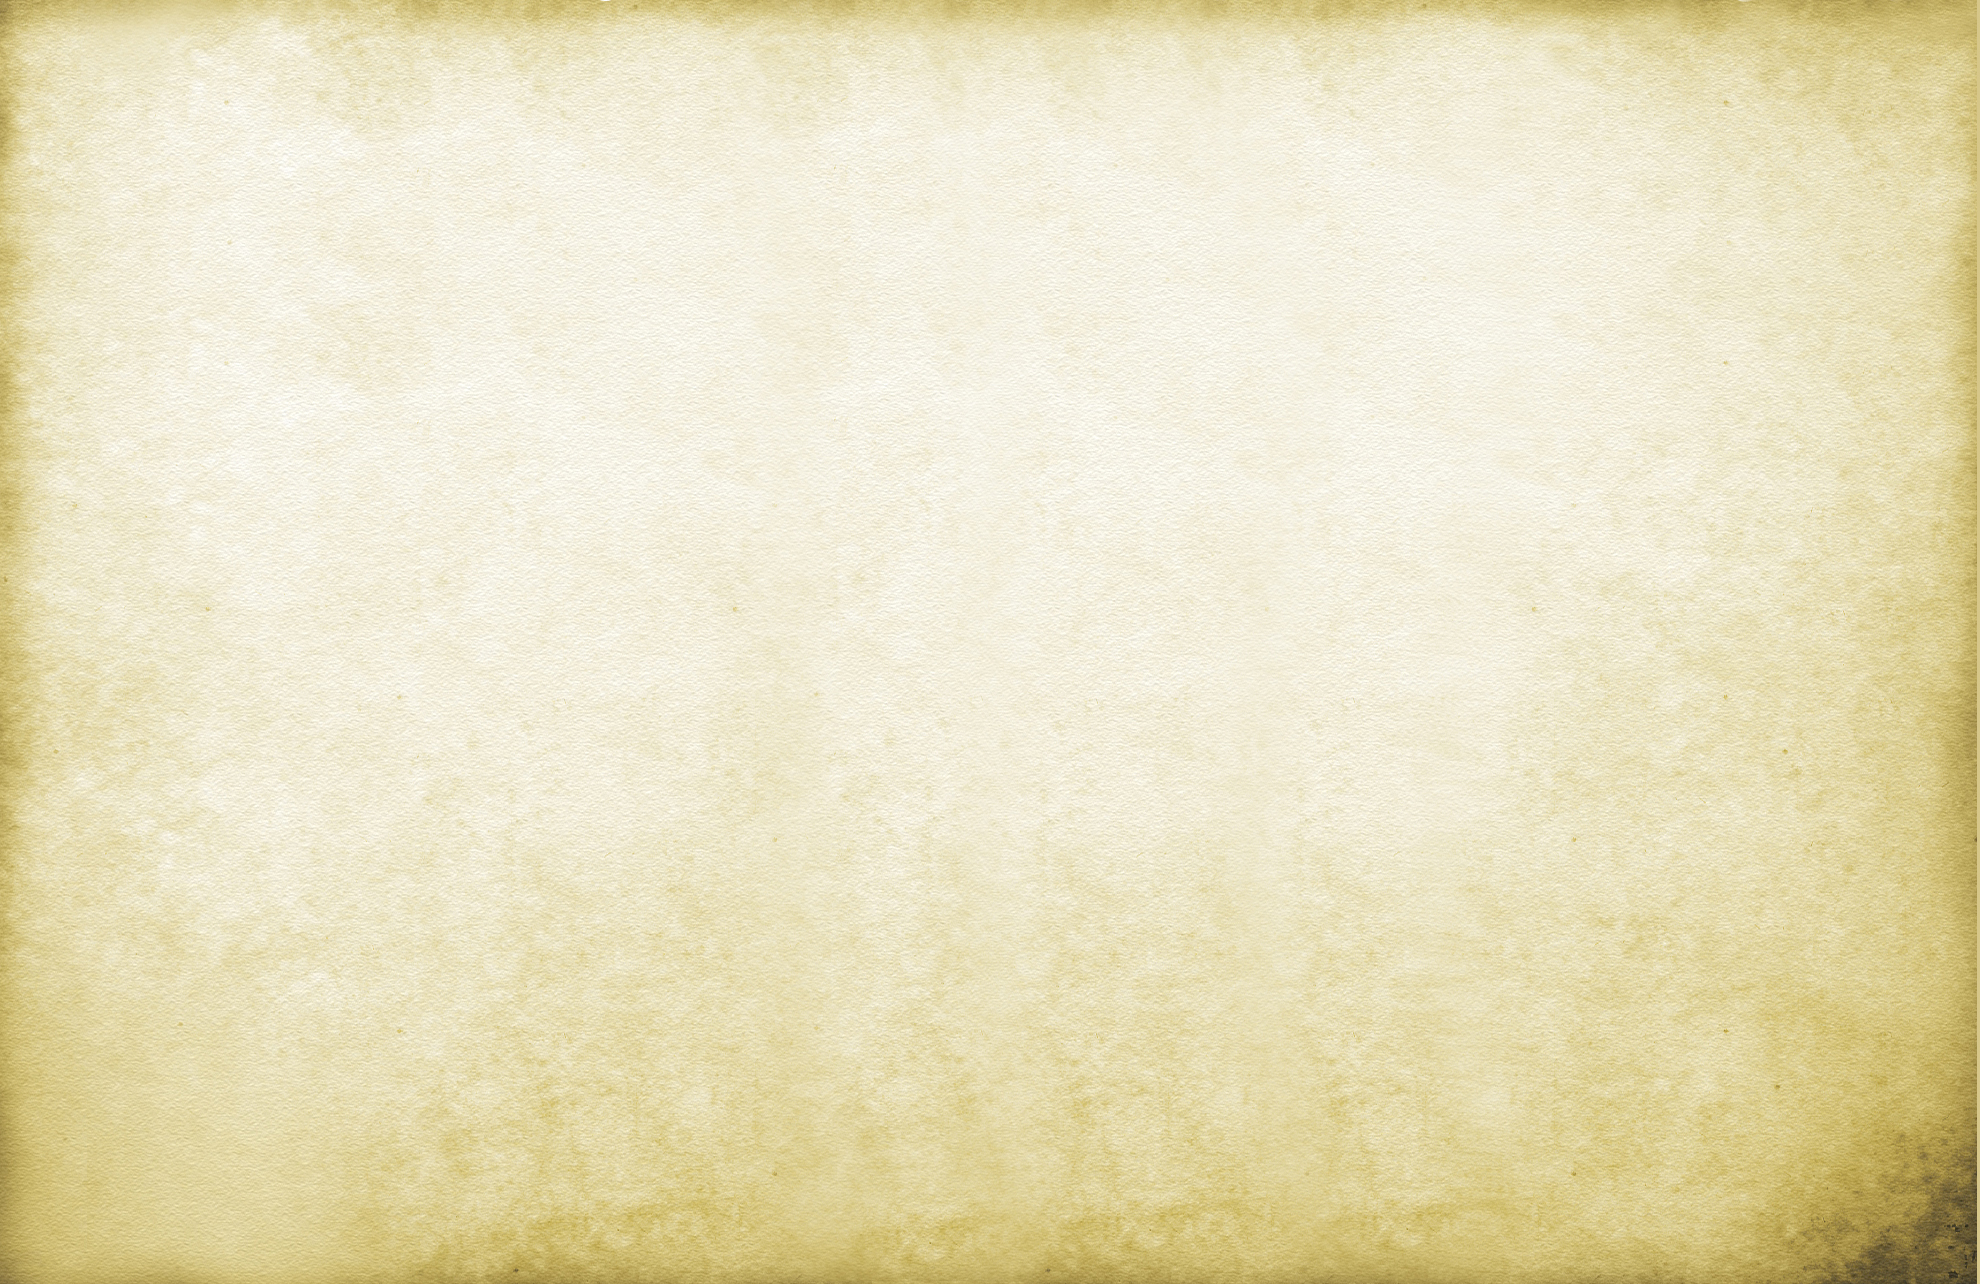 Antique Scroll Backgrounds For Powerpoint Template Pictures